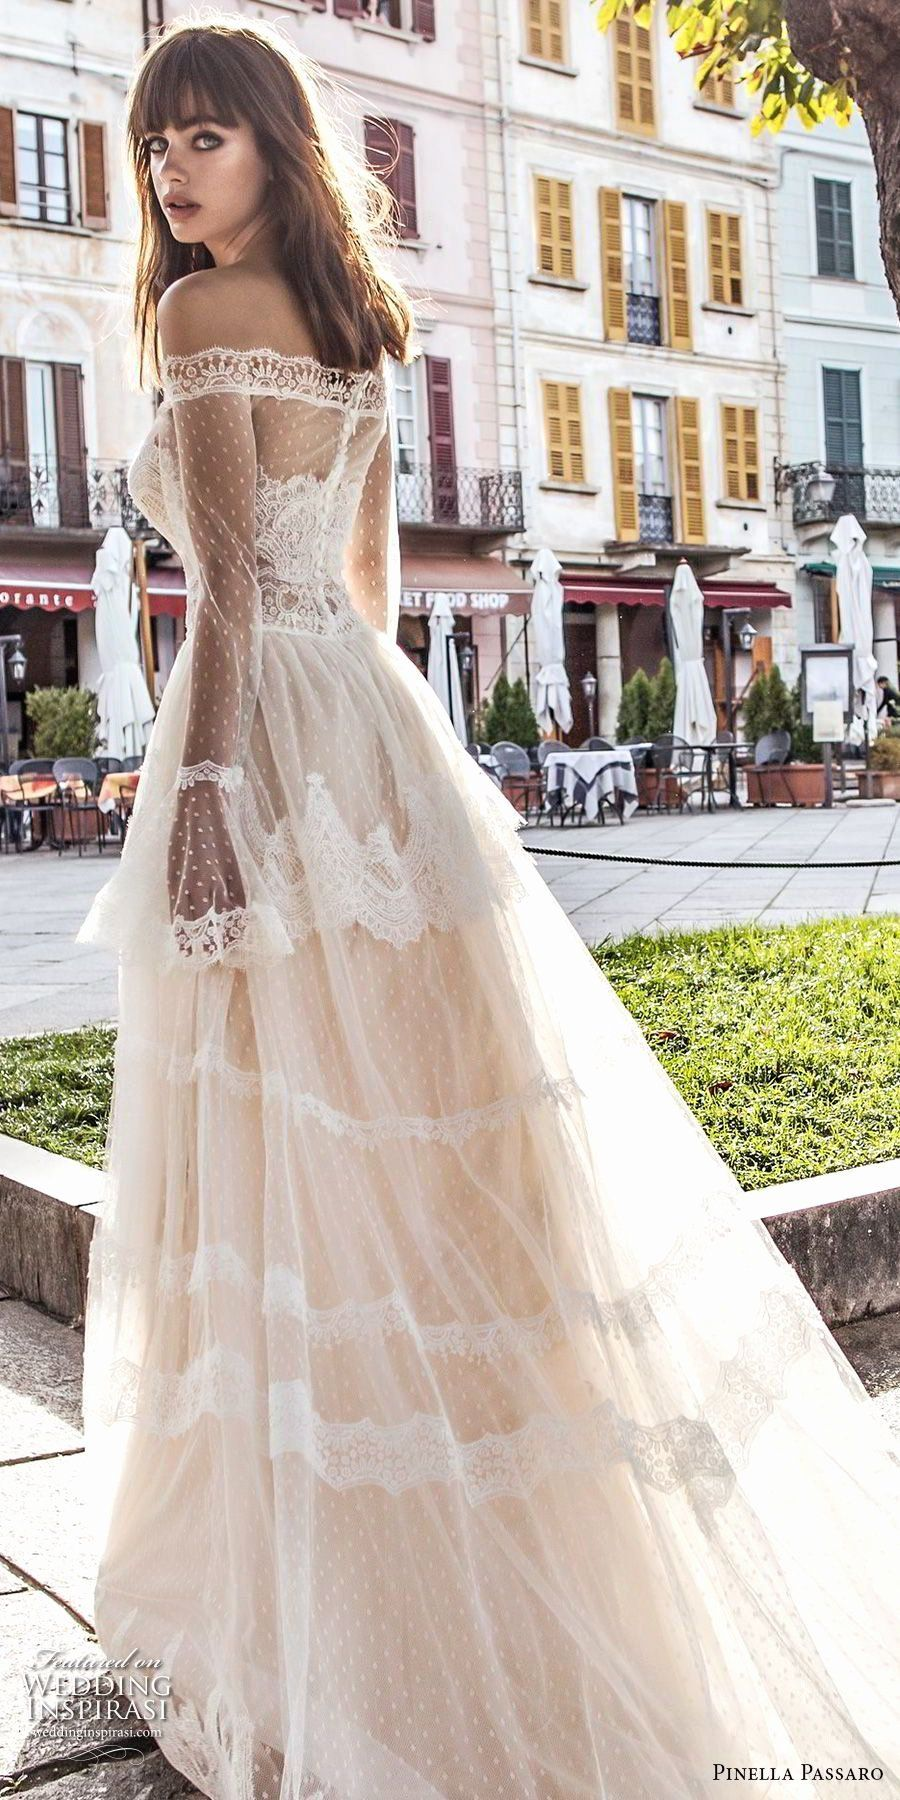 Wedding Dress Dry Cleaners Near Me In 2020 Trendy Wedding Dresses Beautiful Dresses Wedding Dresses Lace